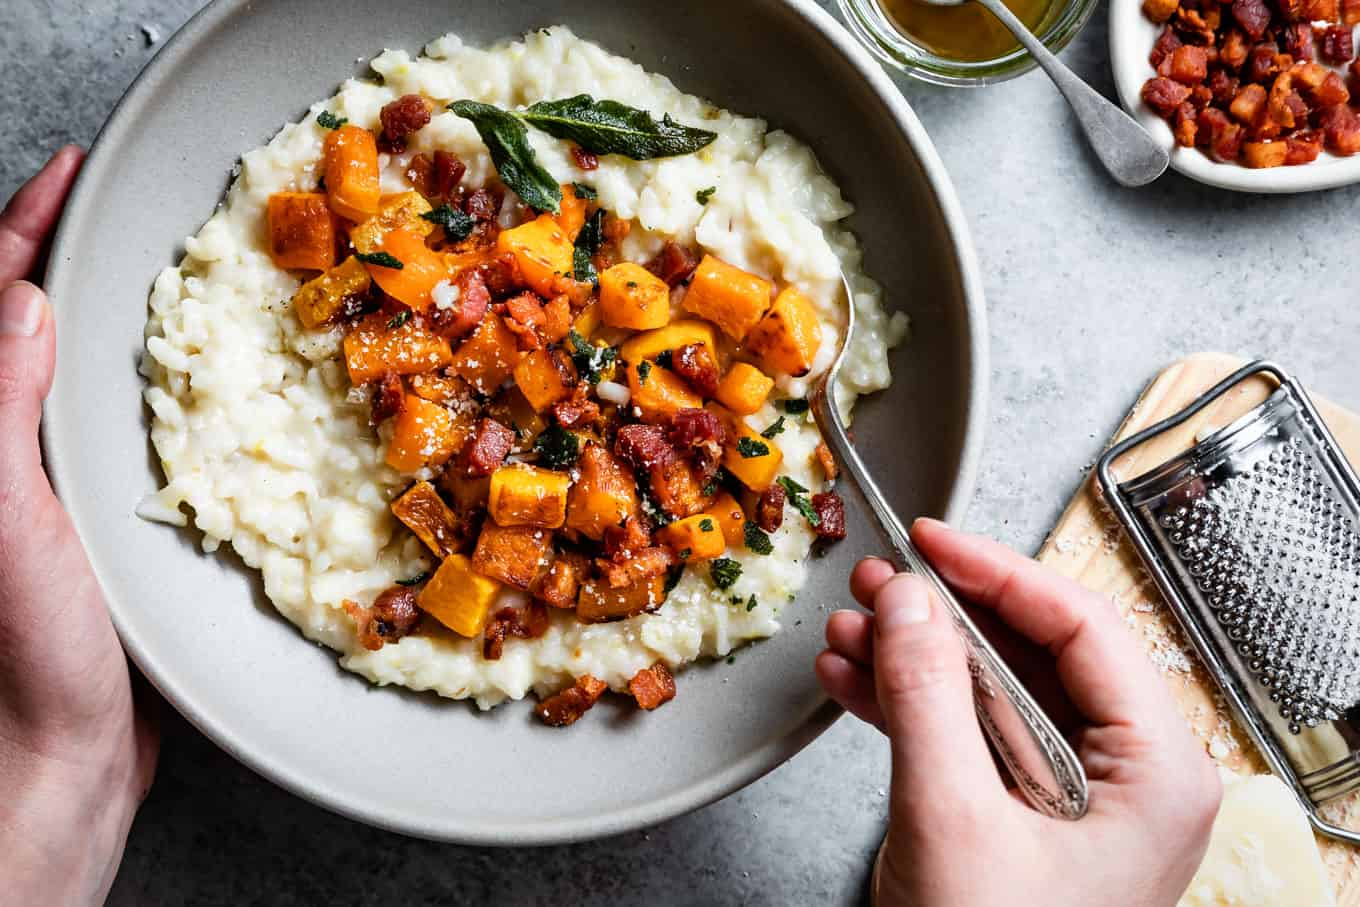 Creamy Risotto Recipe with Roasted Butternut Squash